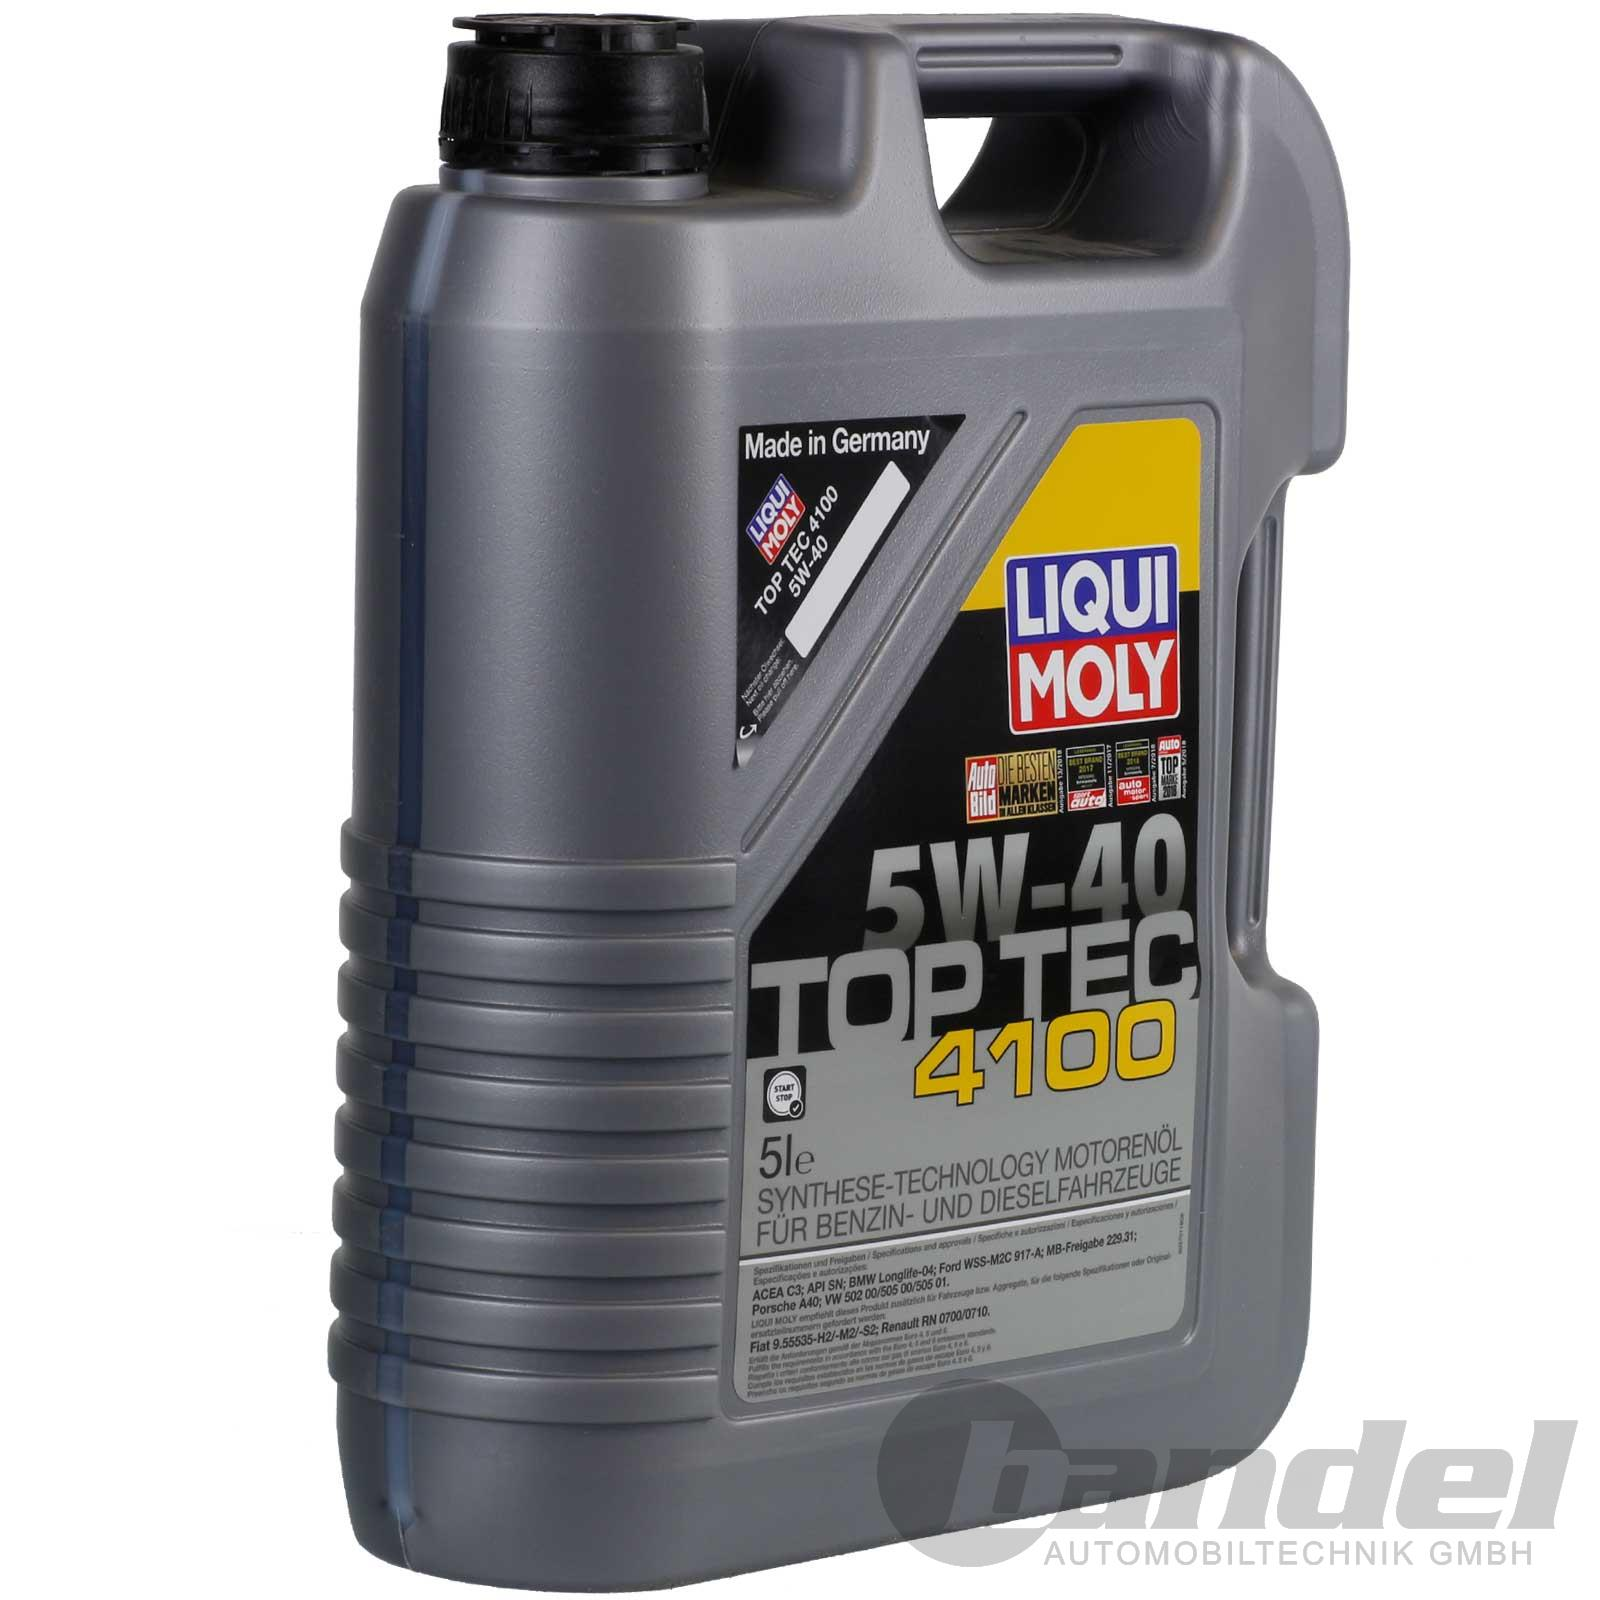 6 98 1l liqui moly top tec 4100 5w 40 motor l l 5 liter 5w40 bmw vw porsche ebay. Black Bedroom Furniture Sets. Home Design Ideas